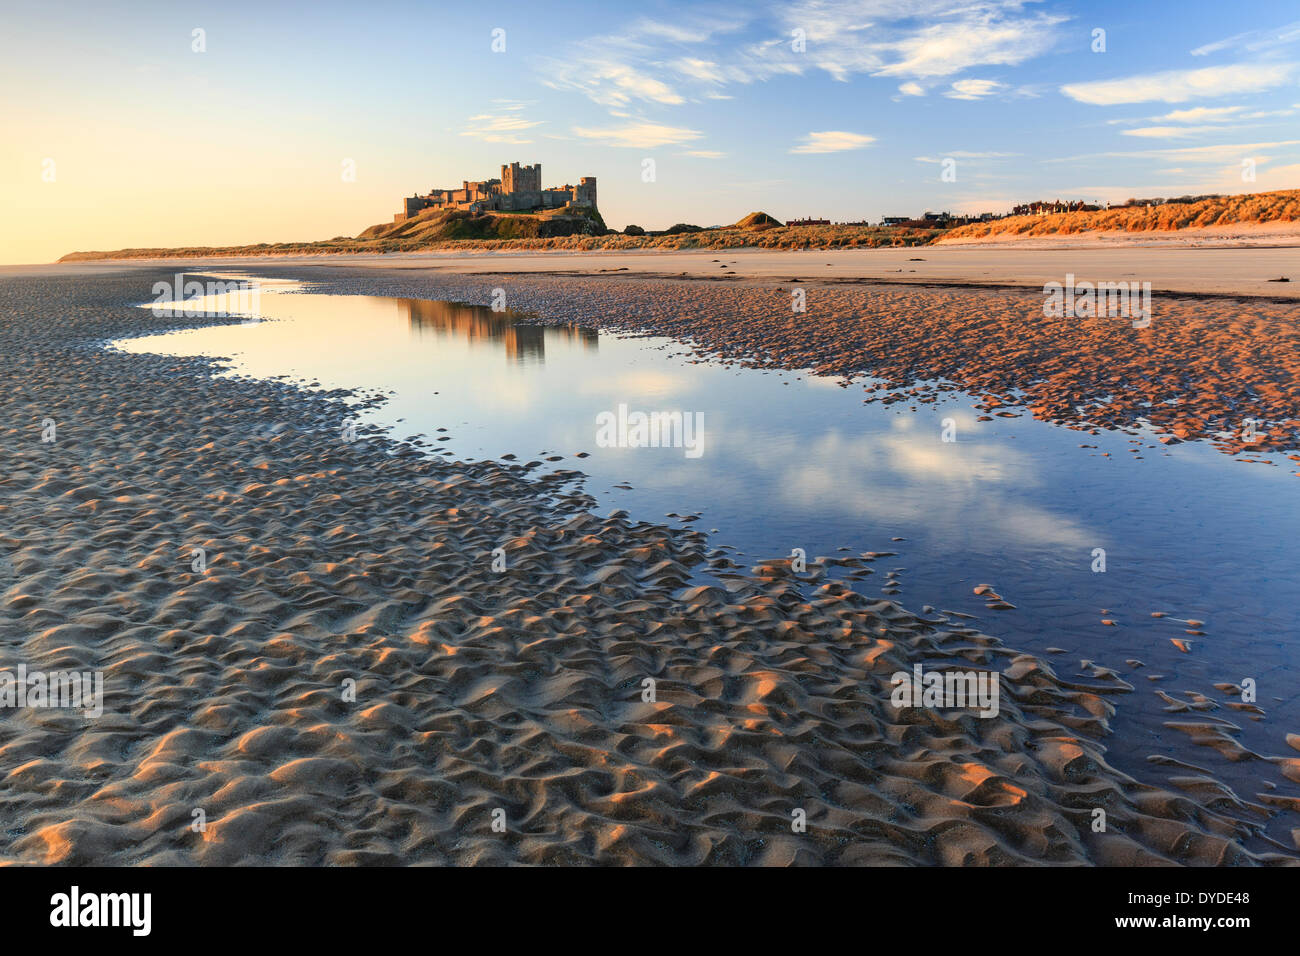 Bamburgh Castle reflected in a tidal pool in early morning sunlight. - Stock Image